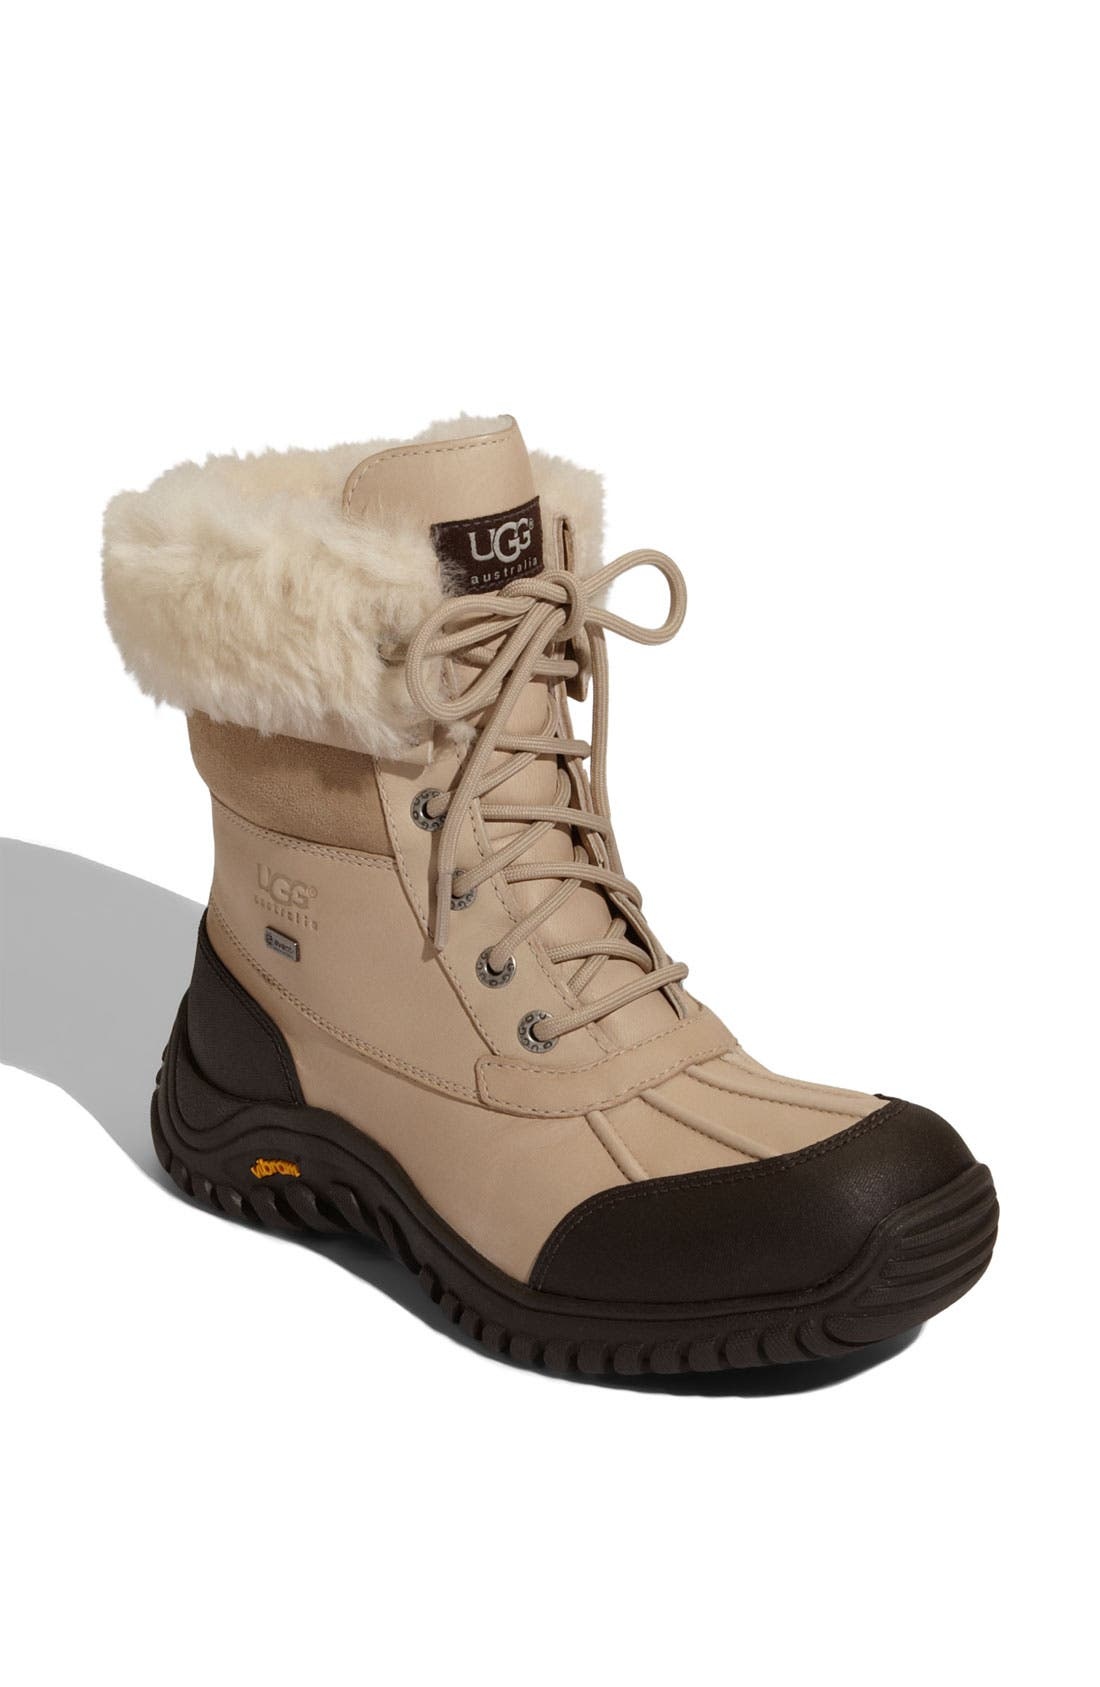 Adirondack II Waterproof Boot,                             Main thumbnail 13, color,